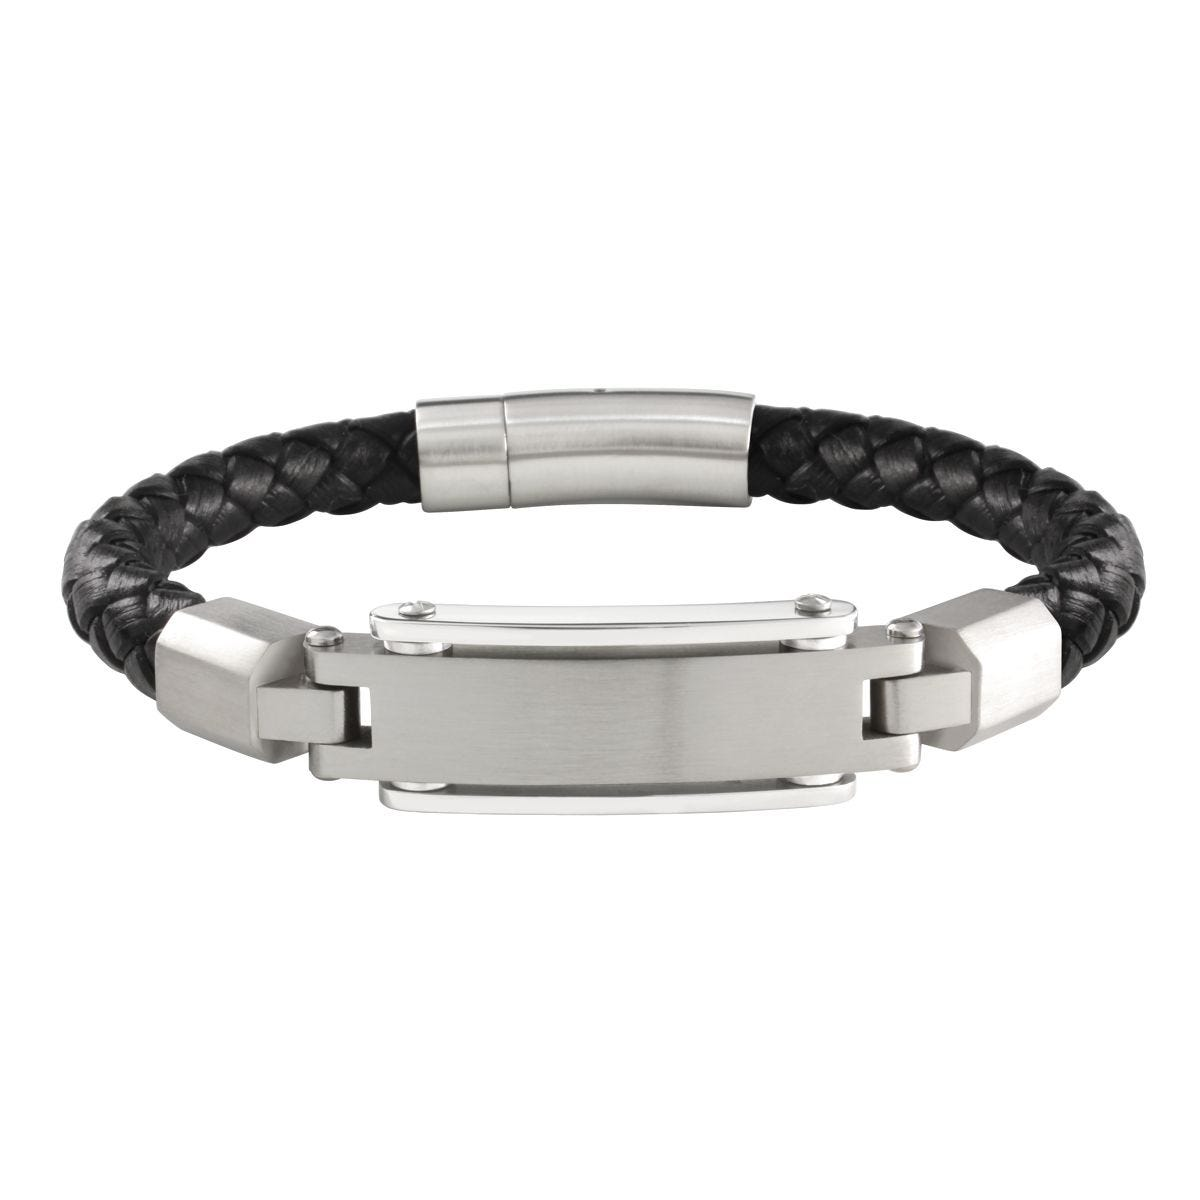 10154a335046e Men's Satin Polish Engravable Silver-tone Black Braided Leather Bracelet